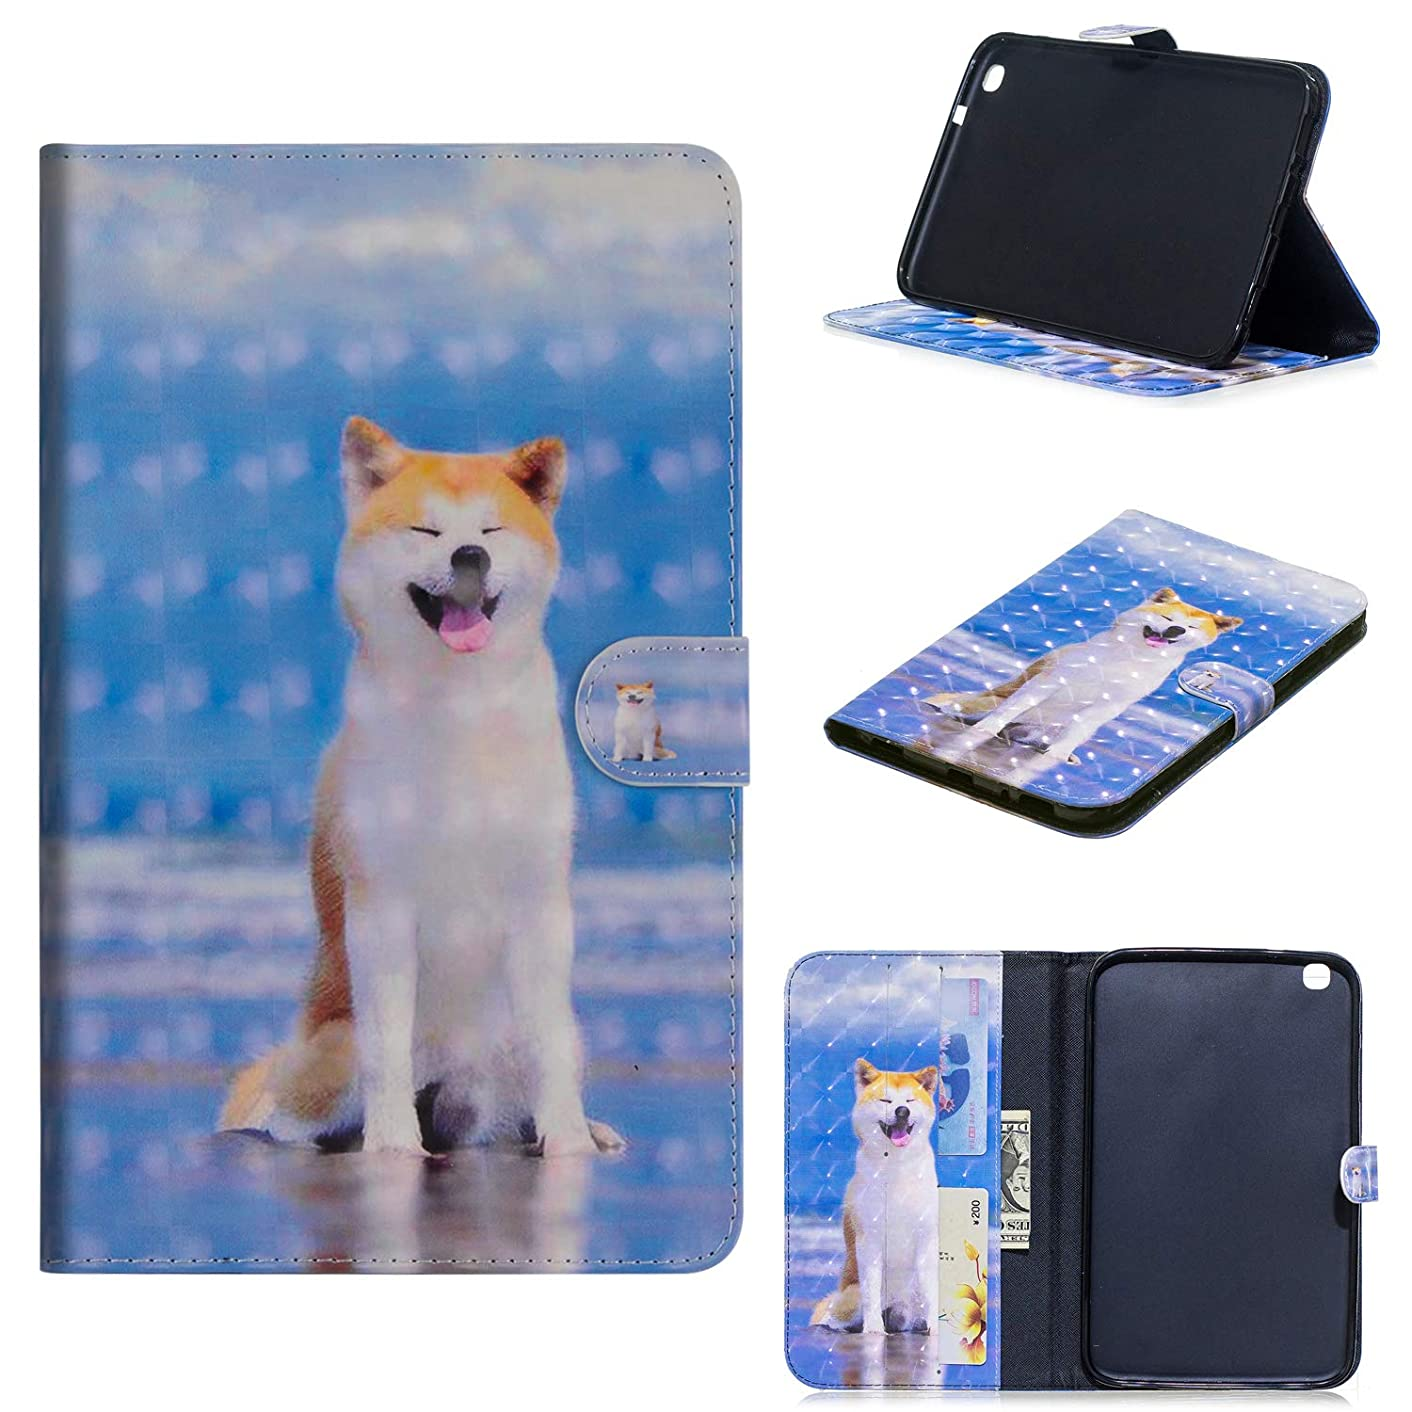 Galaxy Tab 3 8.0 PU Leather Case, CASE4YOU Flip Wallet Book Style Cover Stand Holder Card Slots Shockproof Bumper with Wake Up/Sleep Lovely Dog for Samsung Galaxy Tab 3 8 Inch SM-T310/T311/T315